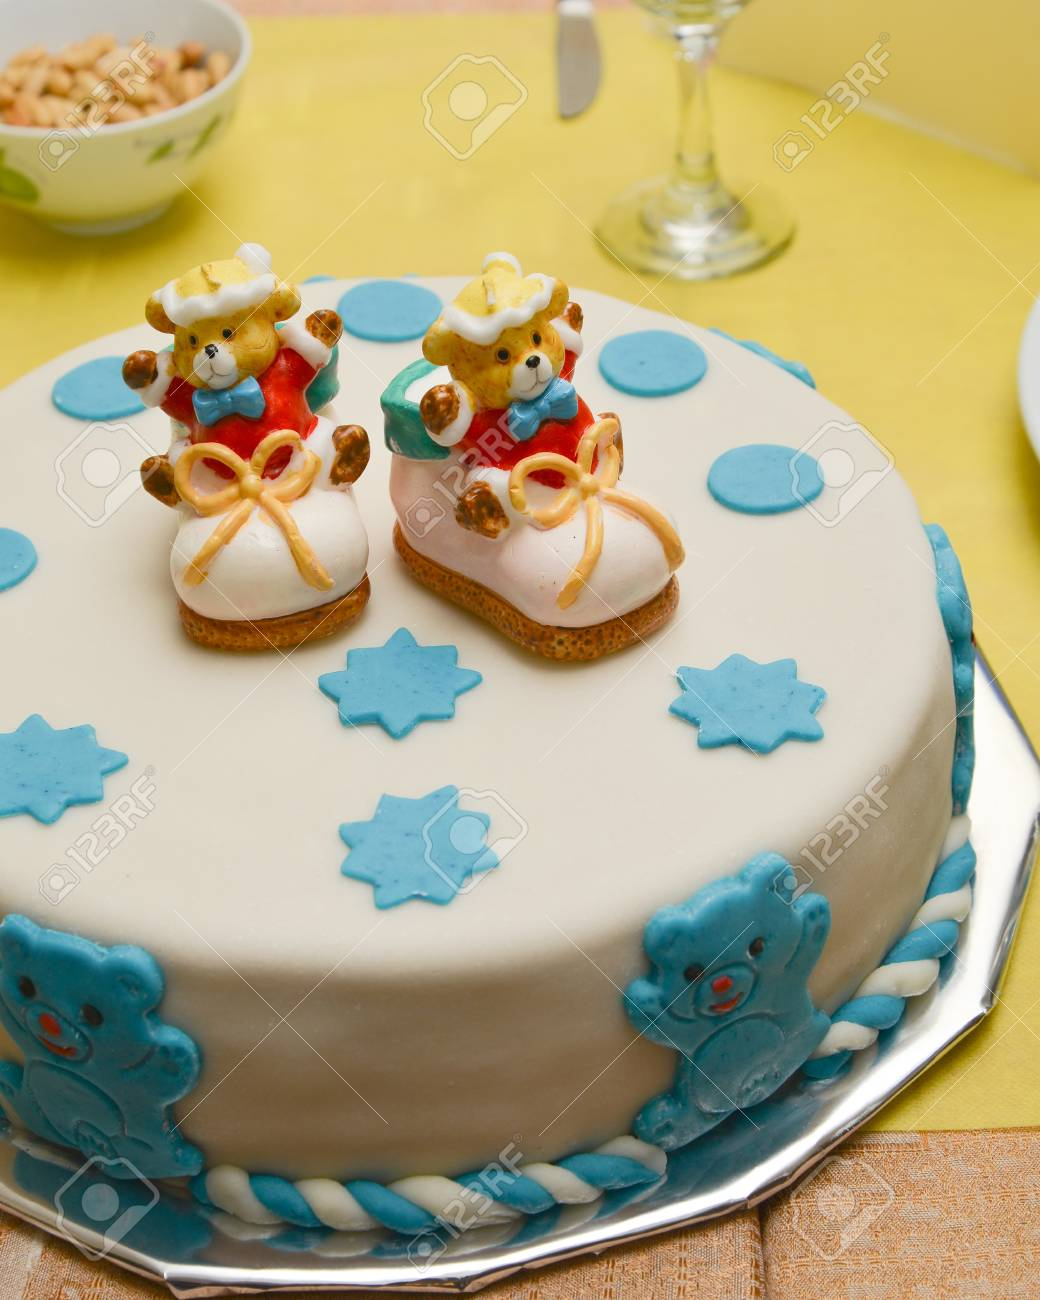 Baby Boy Birthday Cake With Cute Shoes Stock Photo Picture And Royalty Free Image Image 20890172